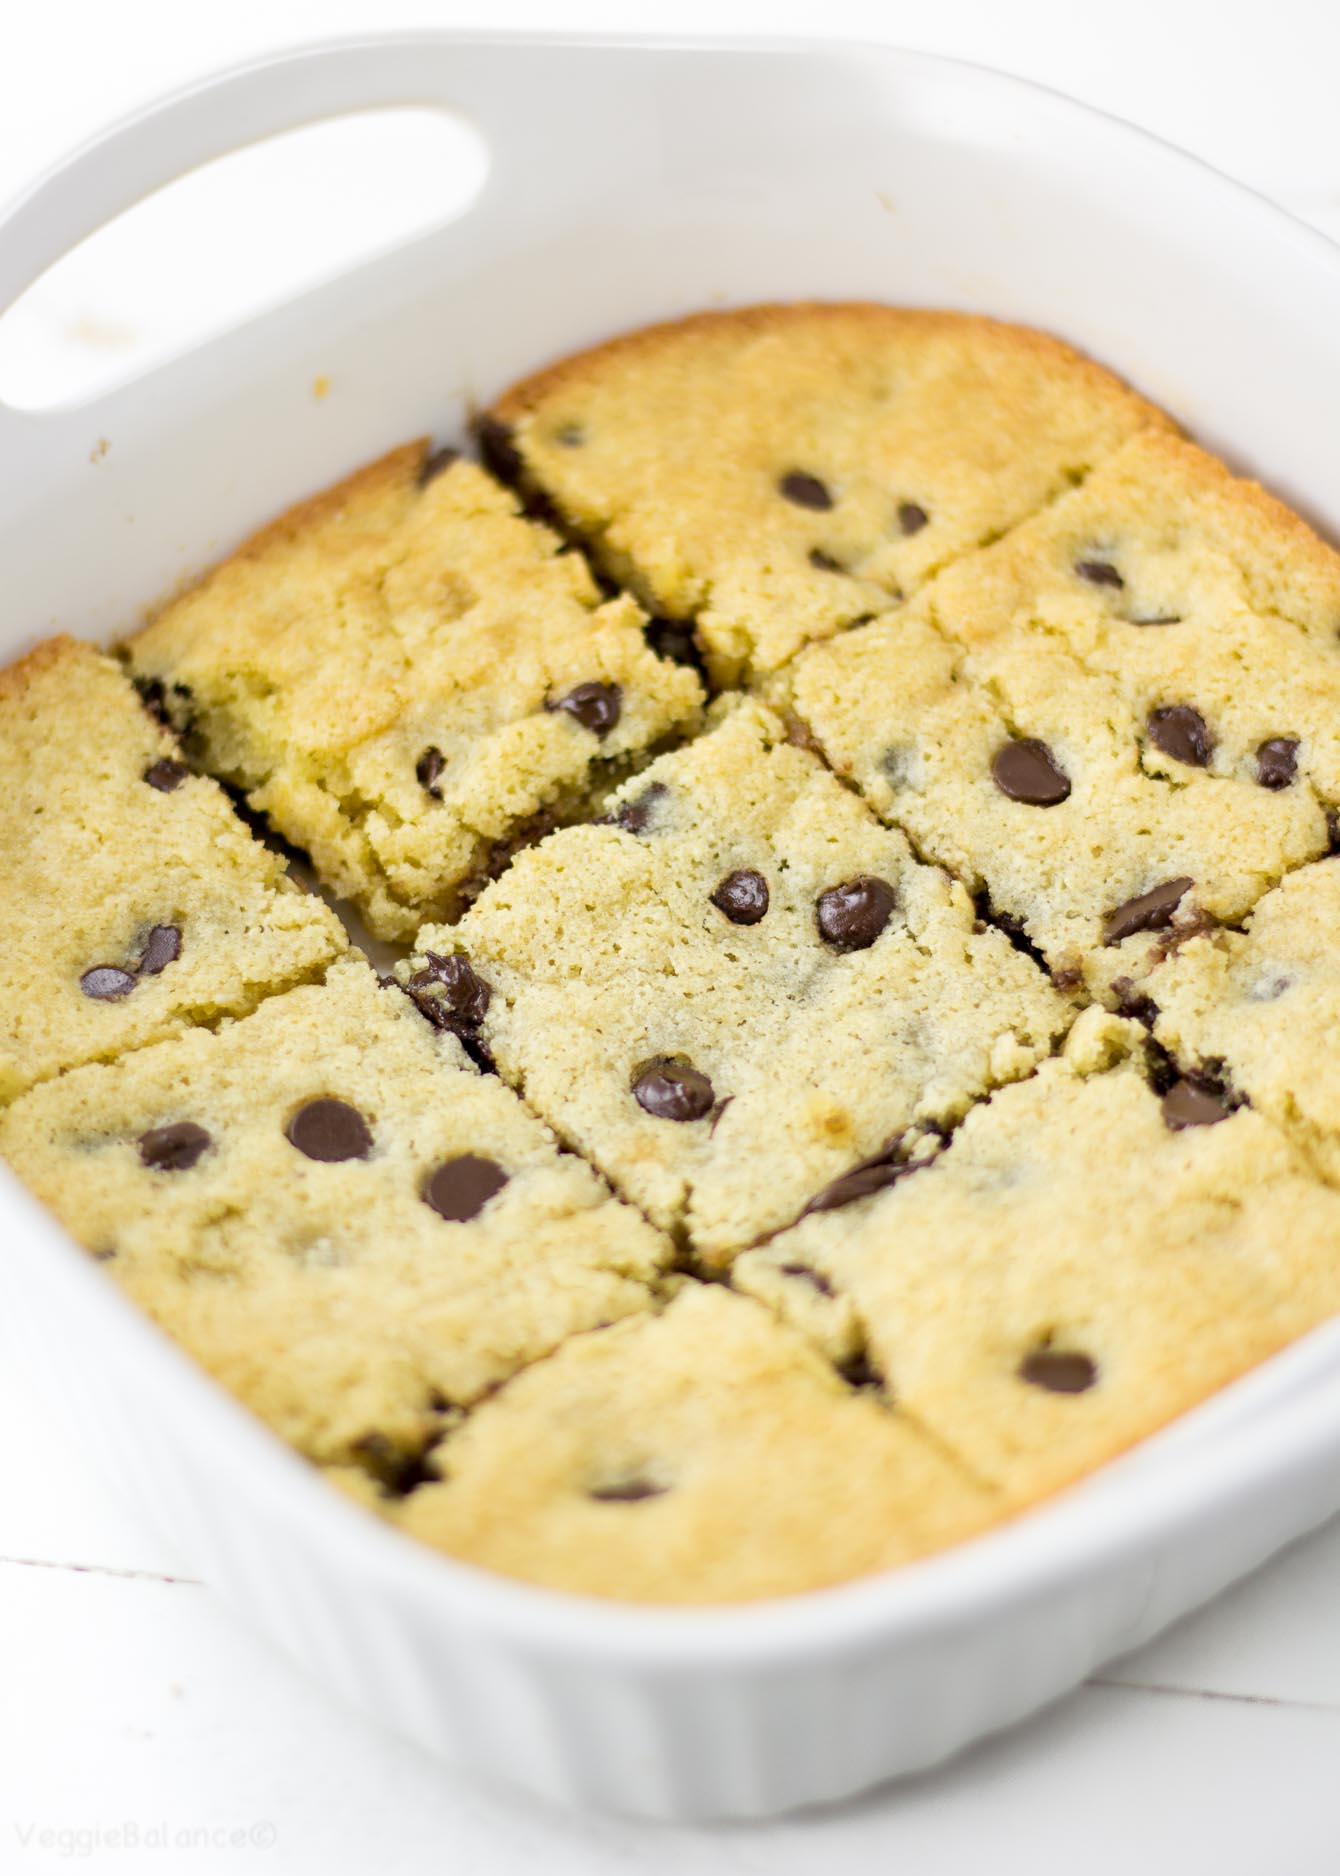 Chocolate Chip Cookie Bars (Gluten Free) - Veggie Balance